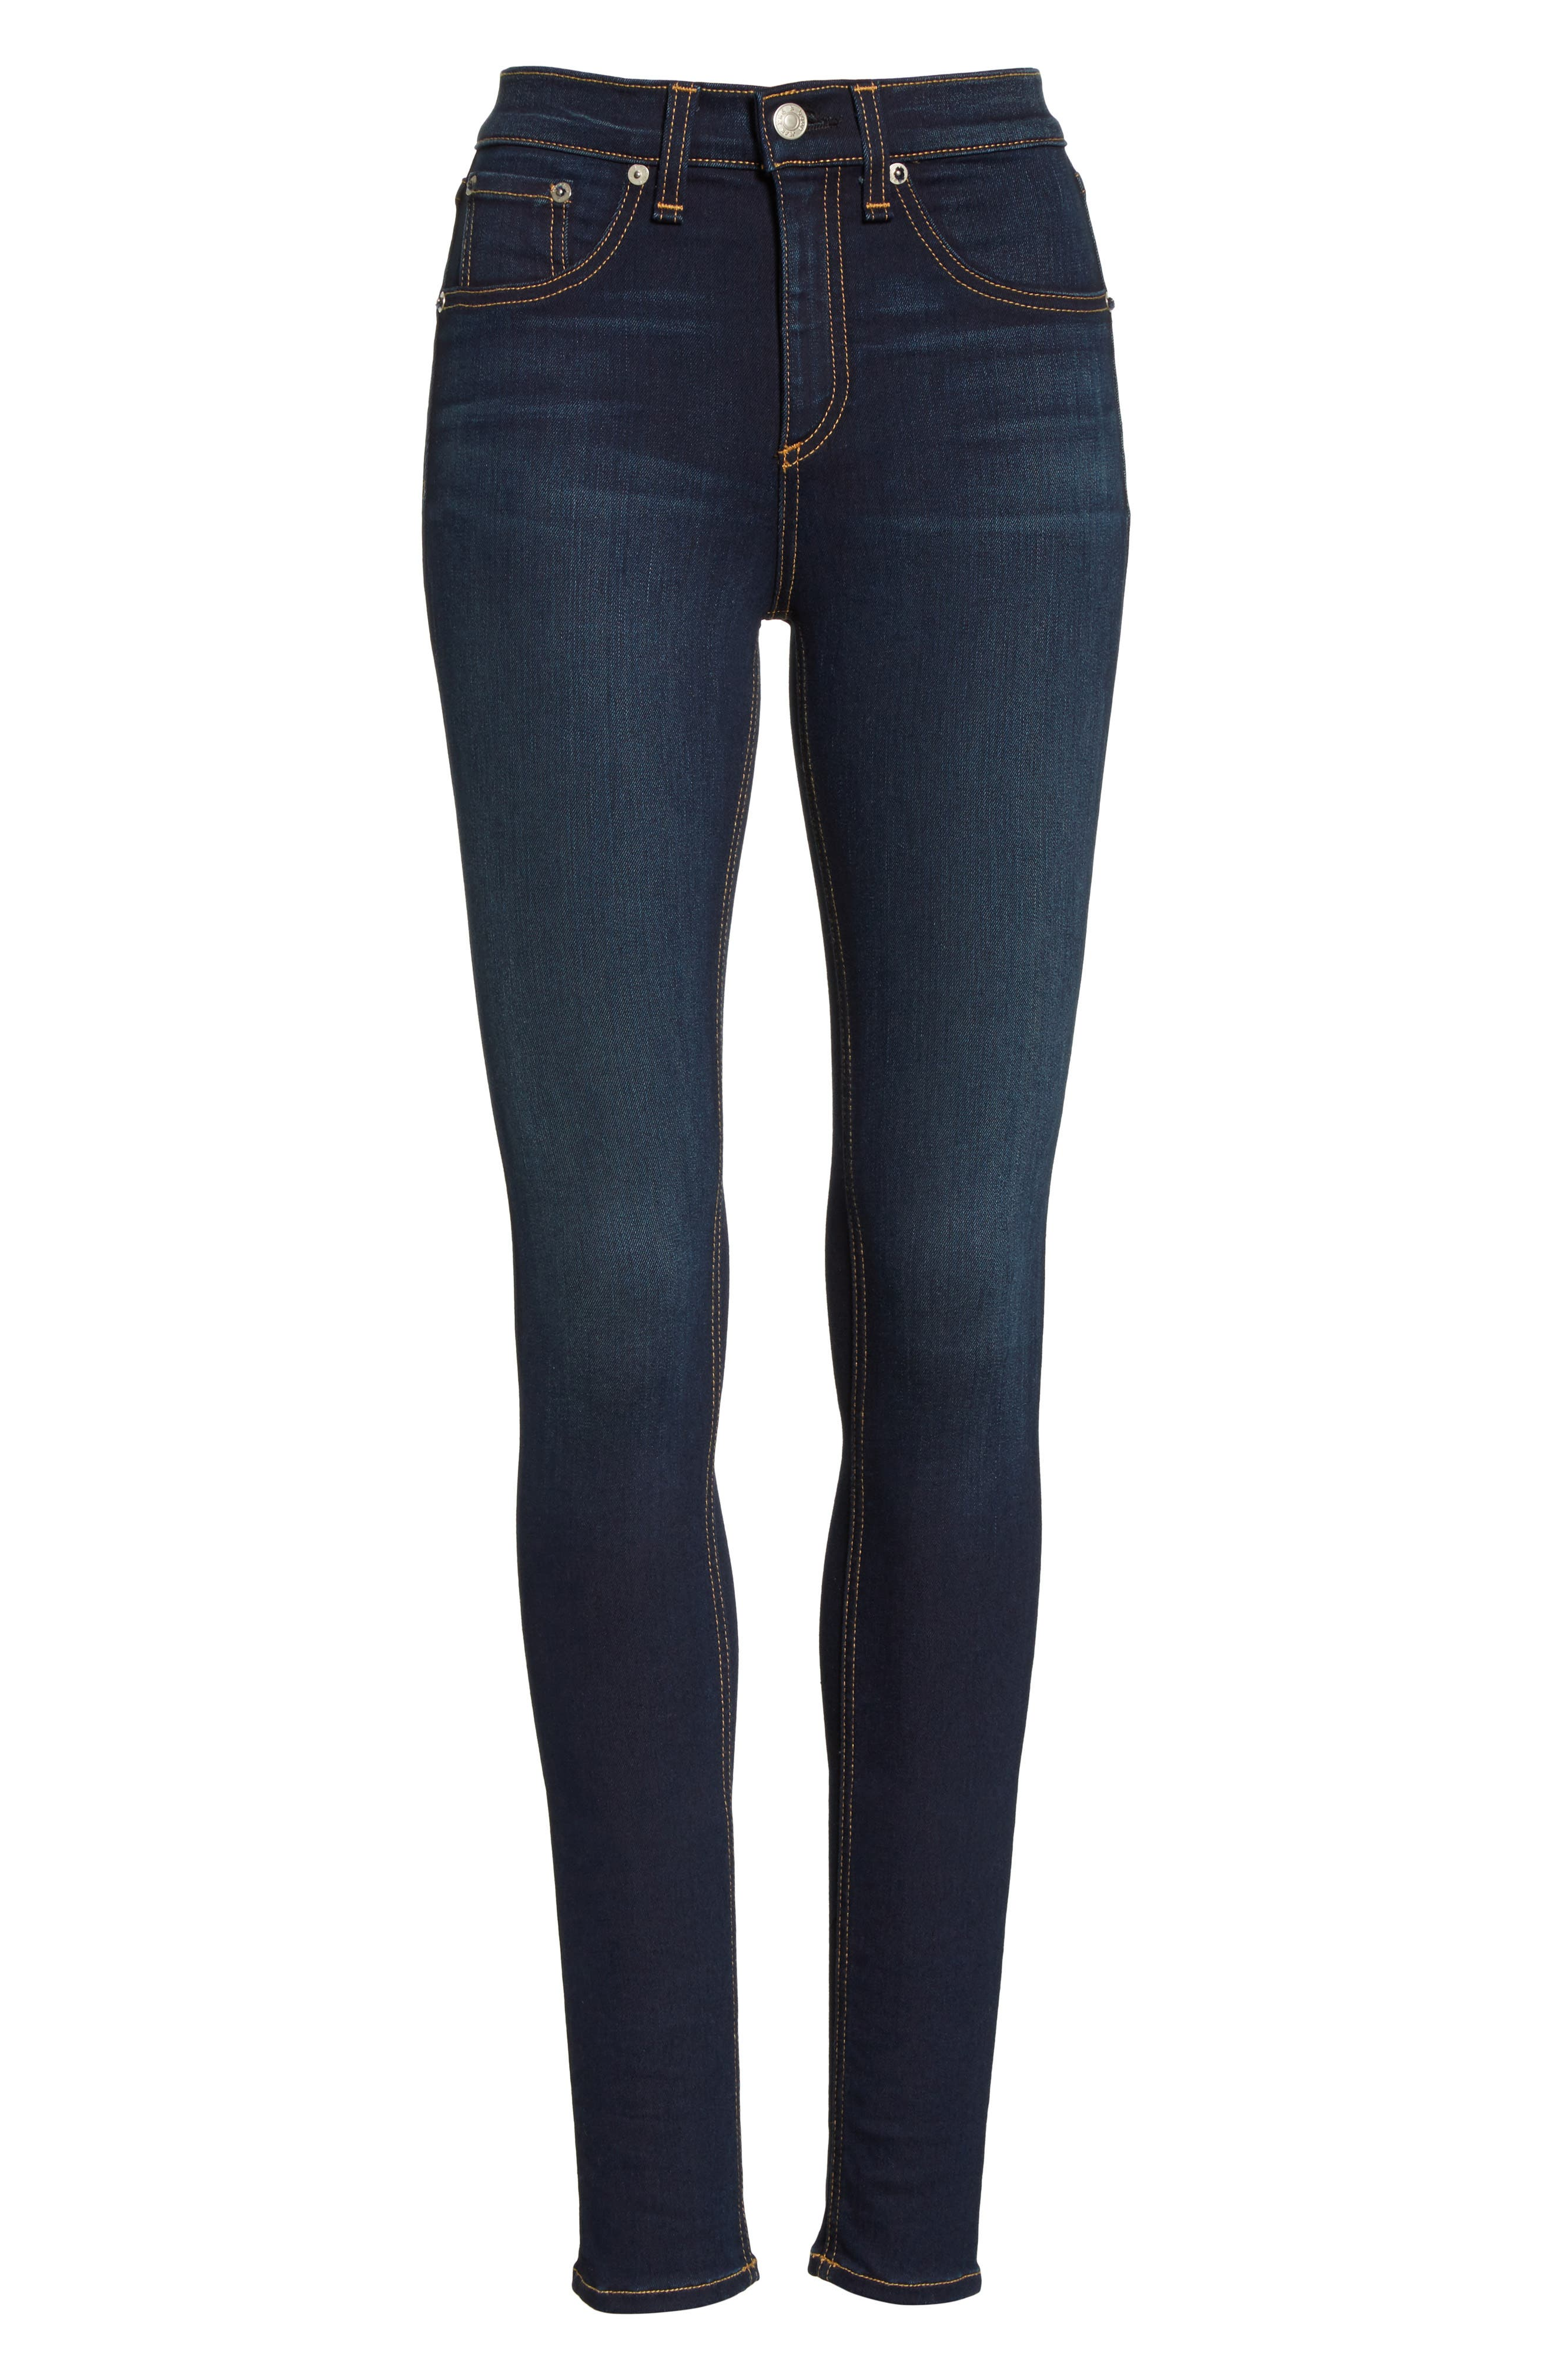 rag & bone DENIM High Waist Skinny Jeans,                             Alternate thumbnail 7, color,                             BEDFORD